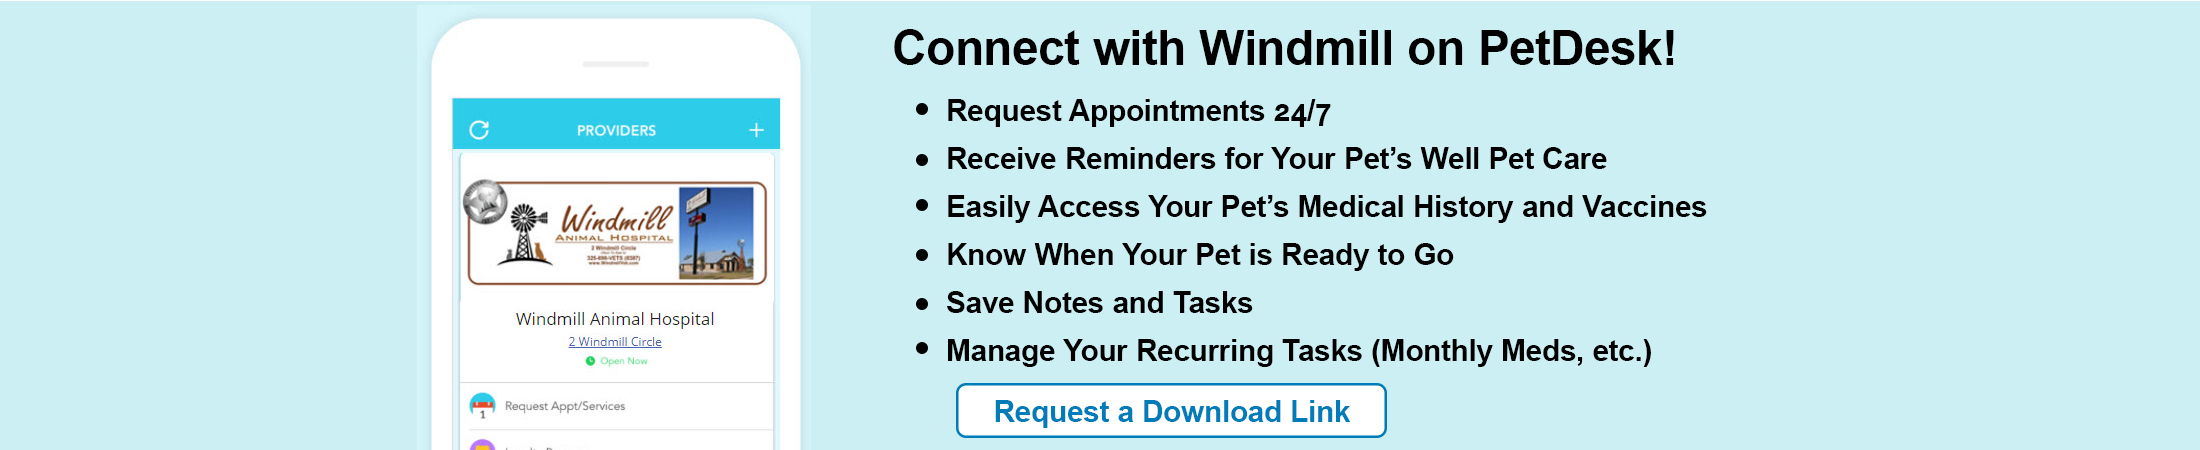 Windmill Animal Hospital Pet Desk Backup